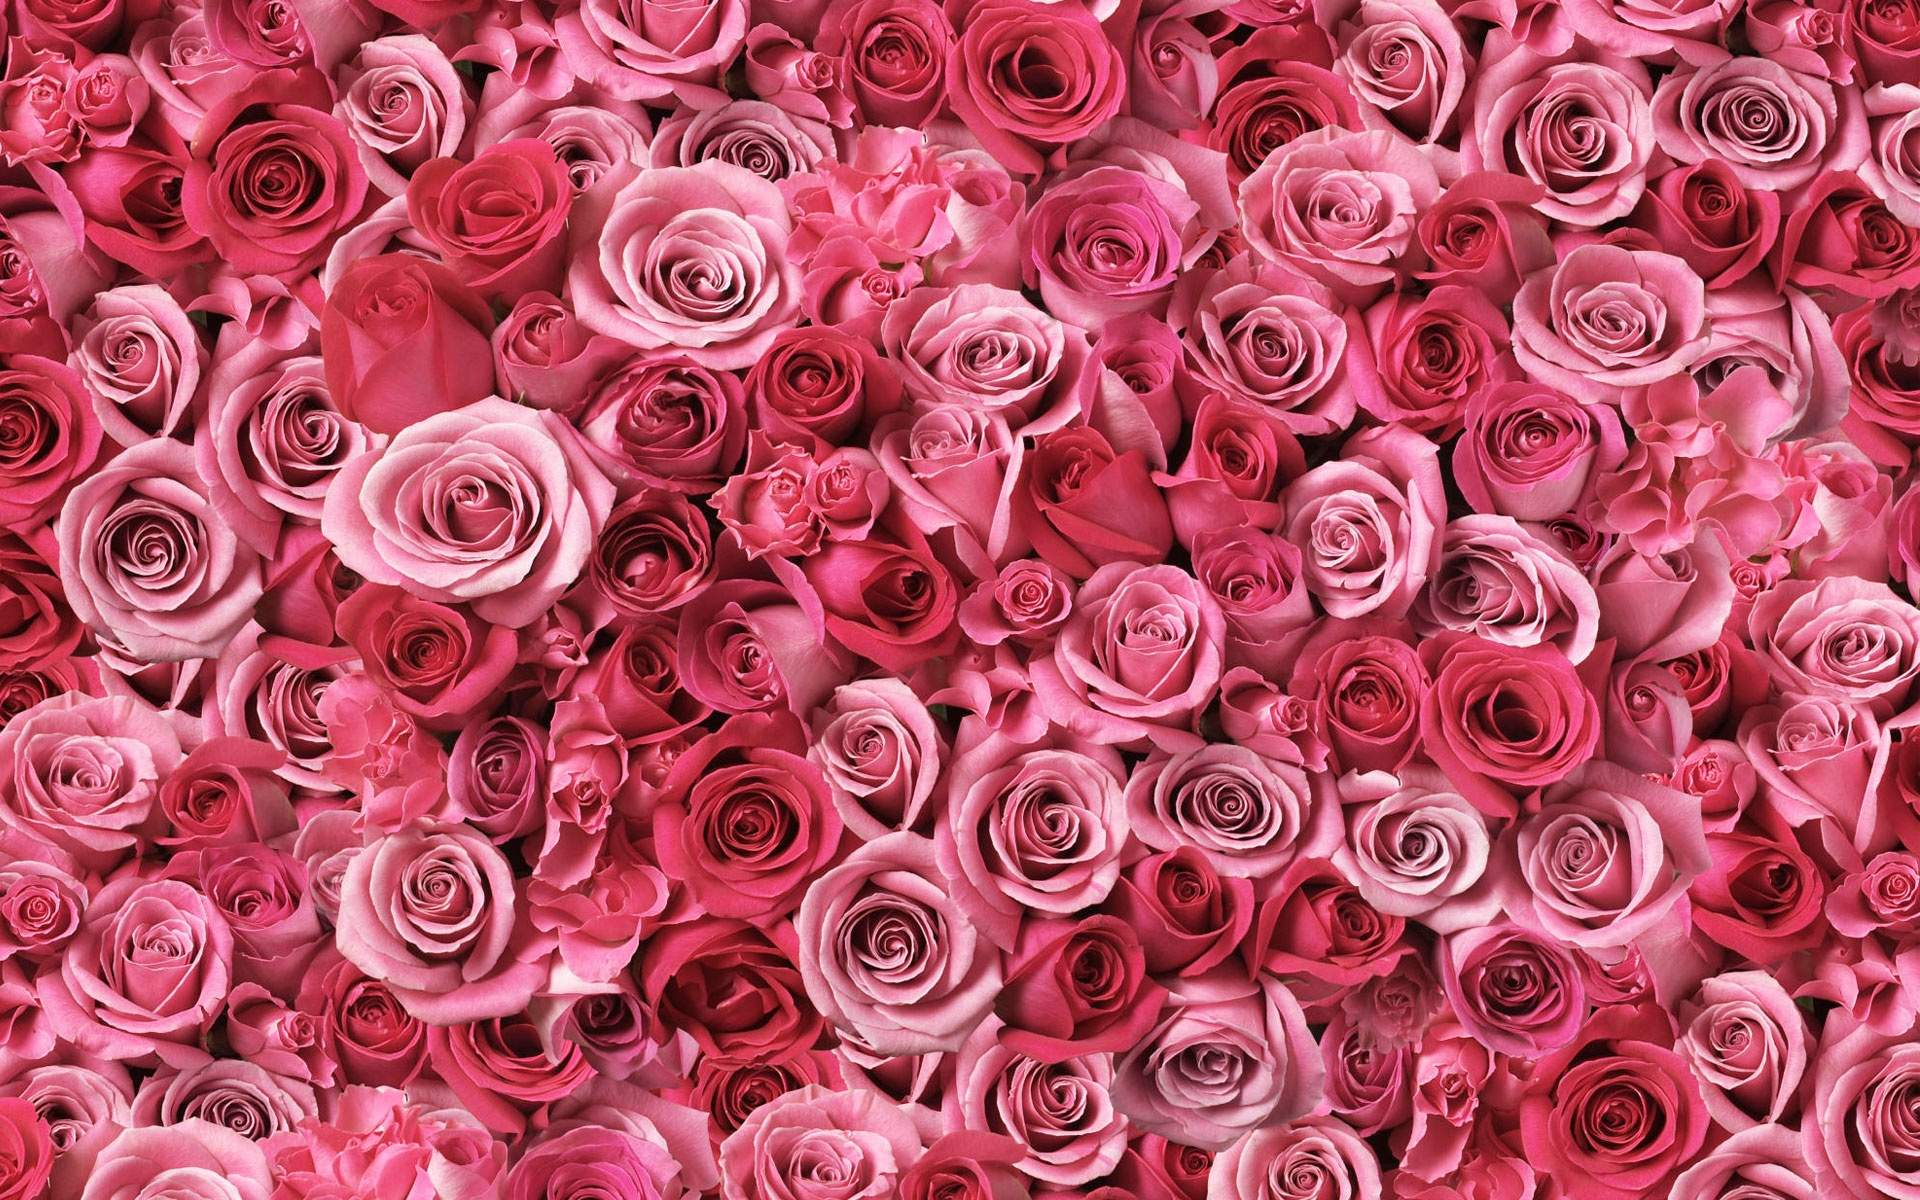 pink flowers rose 7 hd wallpaper - hdflowerwallpaper